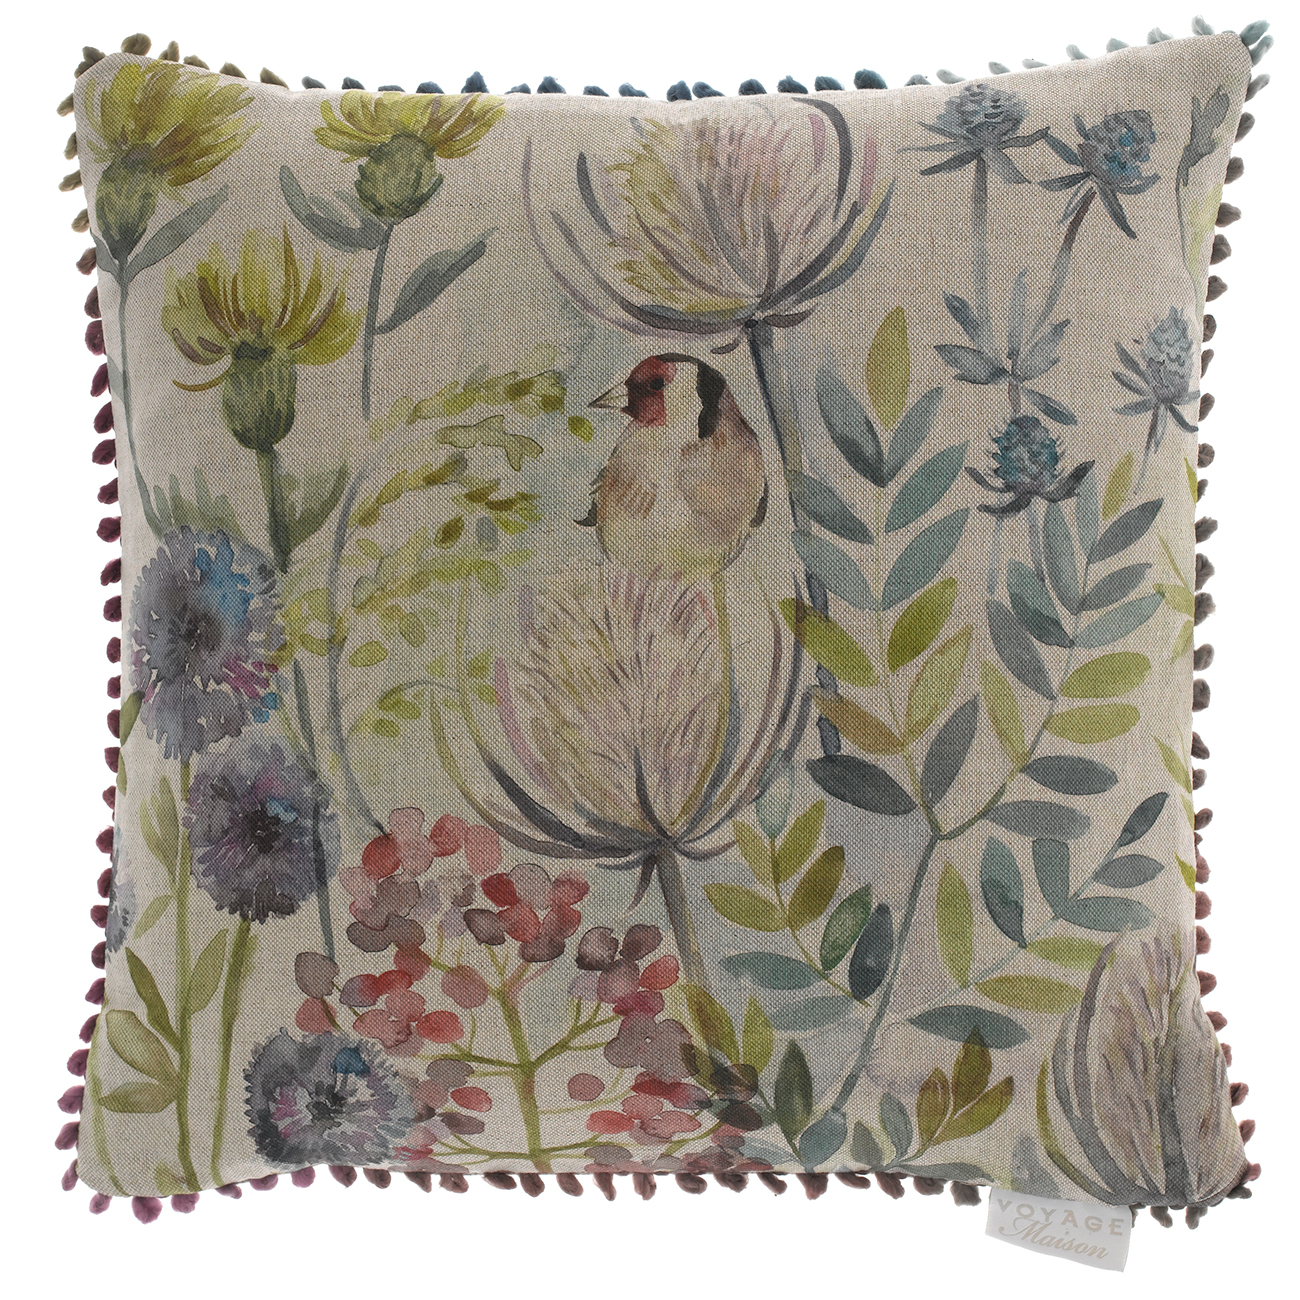 Goldfinch cushion made in scotland finch lane interiors for Au maison cushion